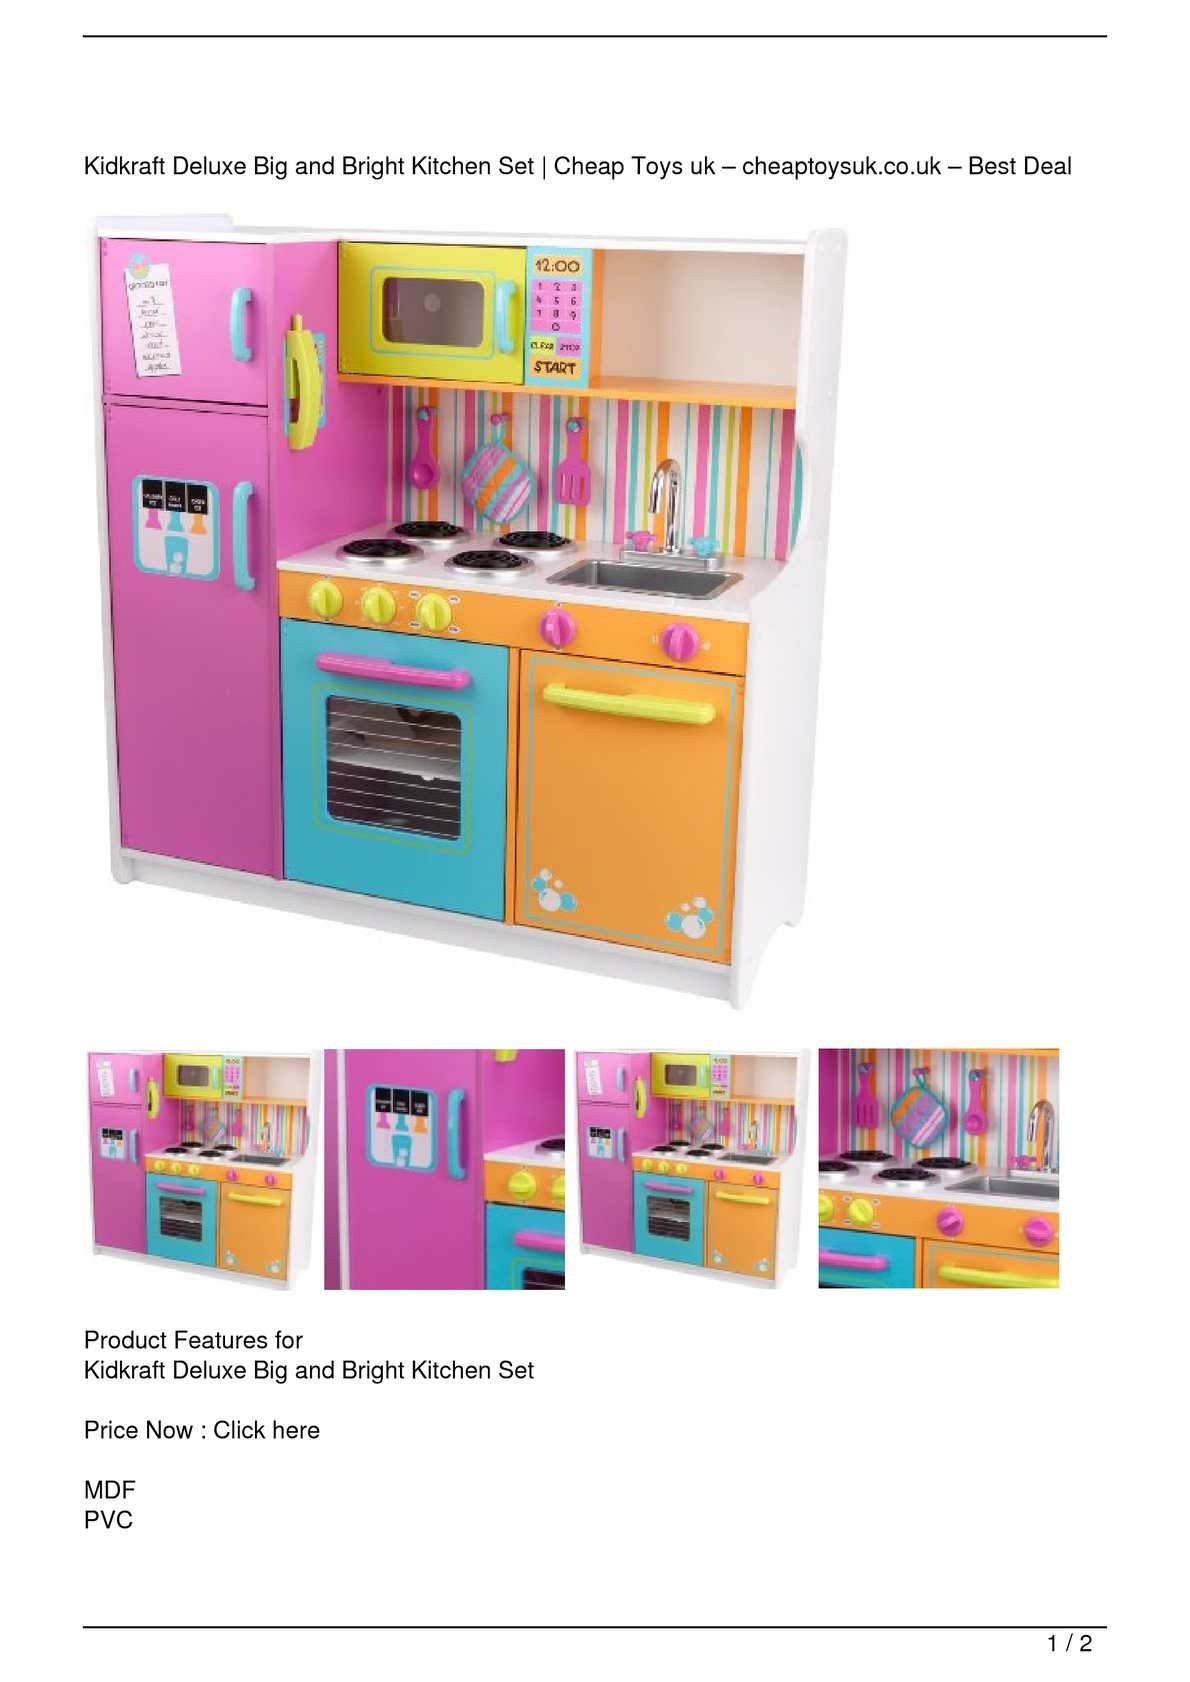 Calaméo   Kidkraft Deluxe Big And Bright Kitchen Set Big SALE